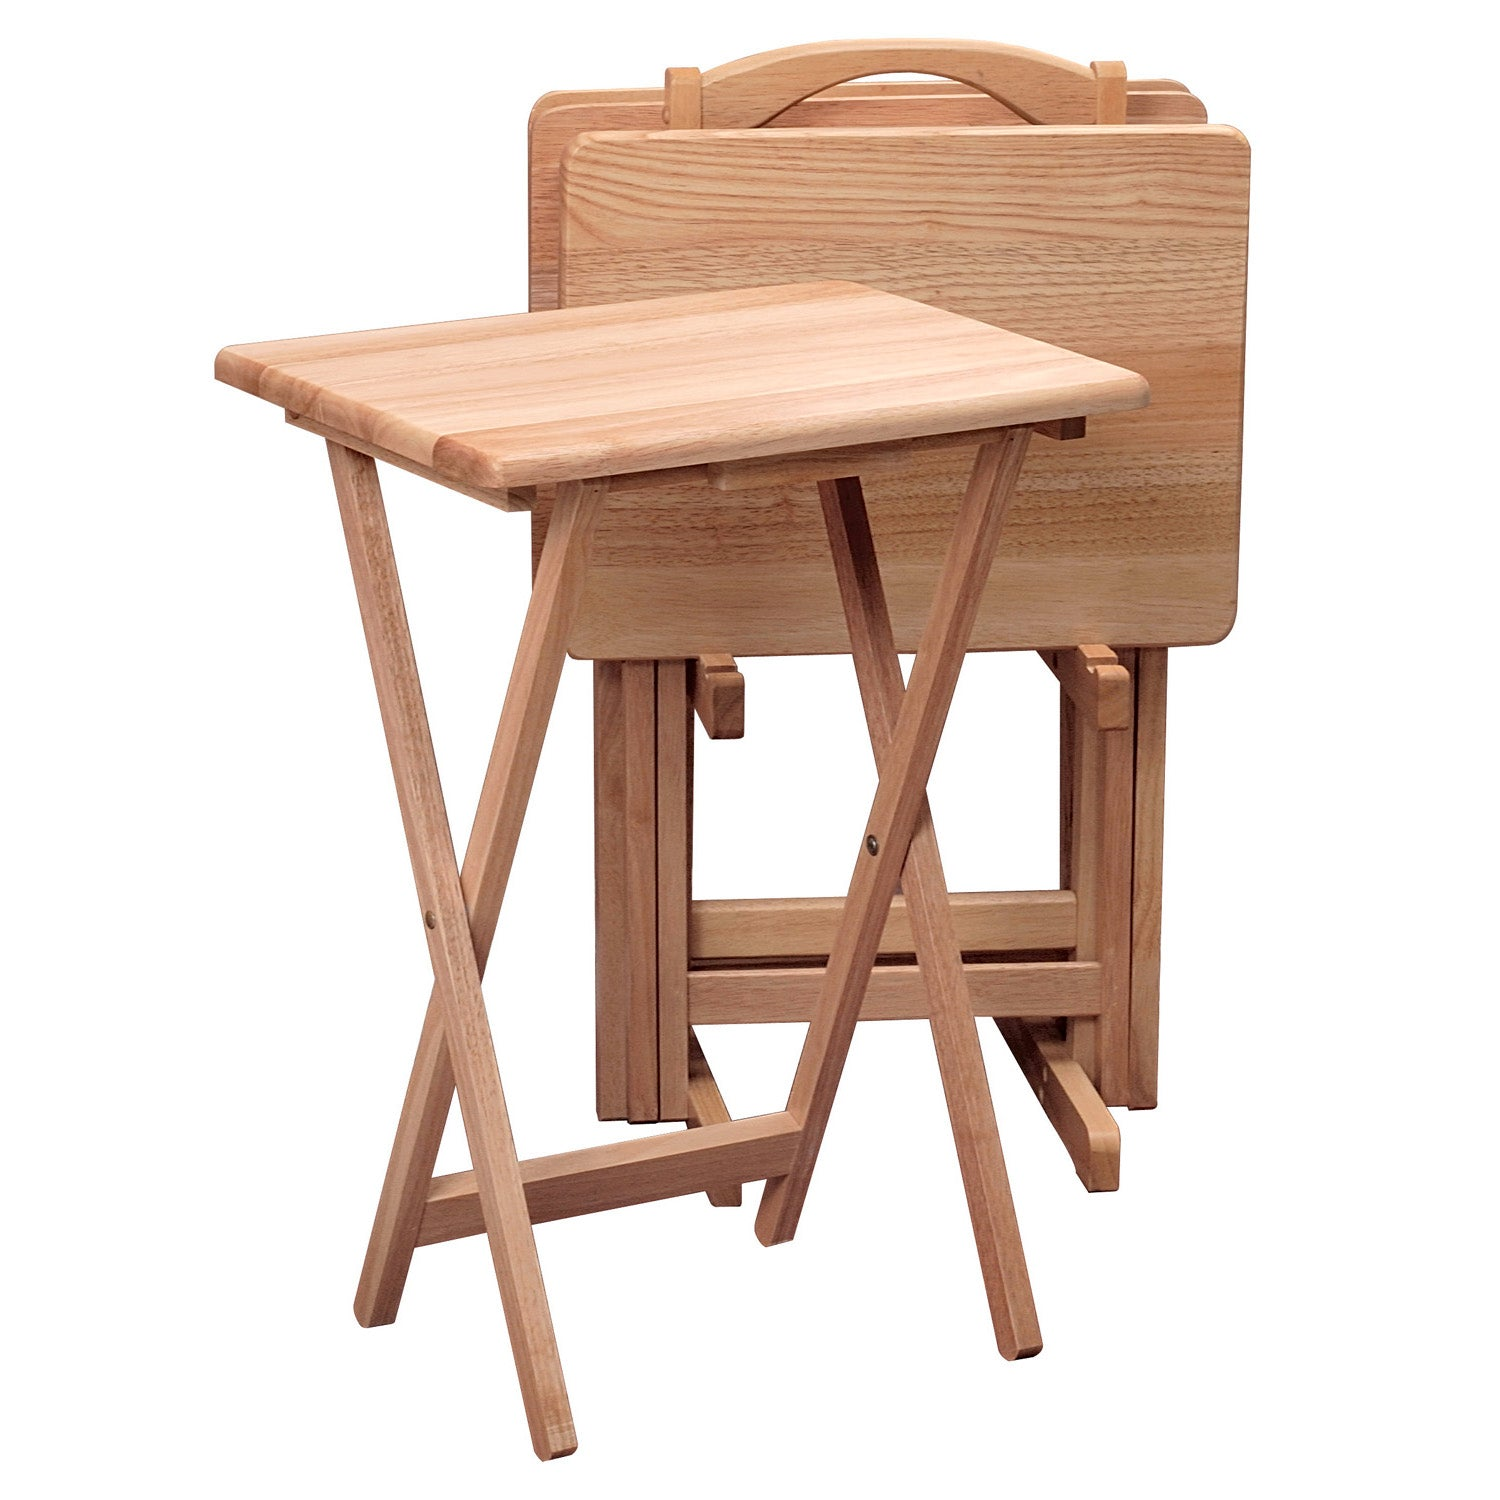 Set of 4 Foldable Snack Tables with a Storage Rack